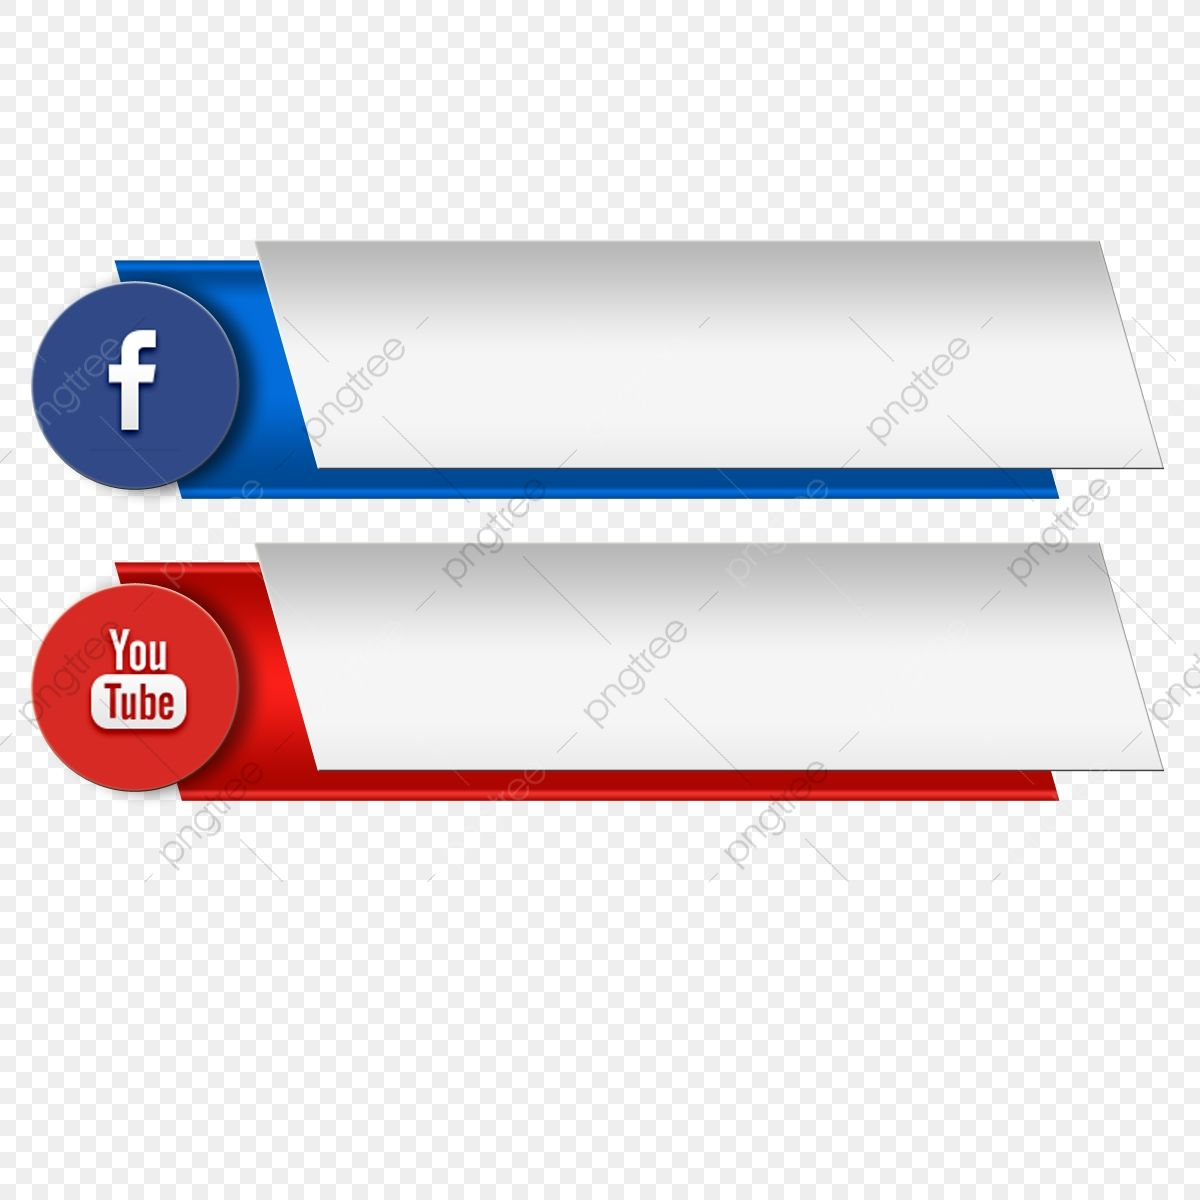 Youtube Social Media Banner Social Media Clipart Youtube Icons Social Icons Png Transparent Clipart Image And Psd File For Free Download Social Media Banner Social Icons Youtube Banners